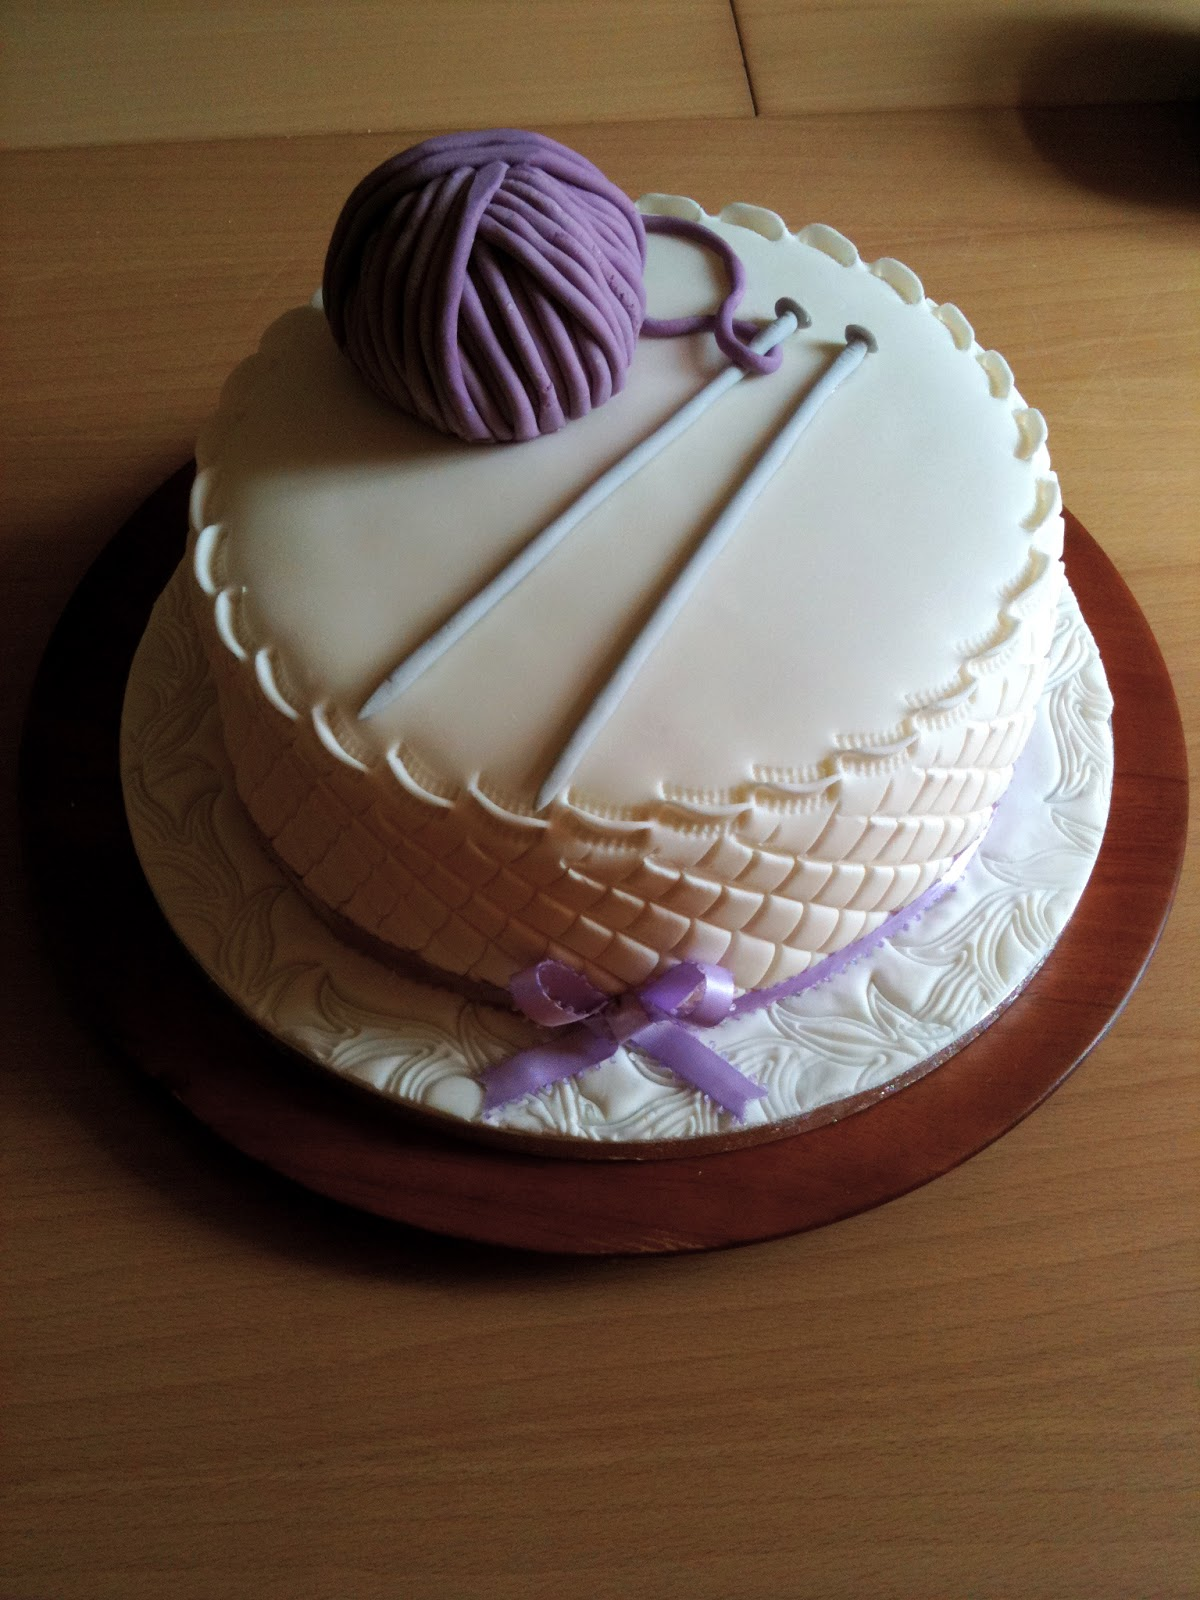 Knitting Birthday Cake Images : The knitting needle and damage done is a